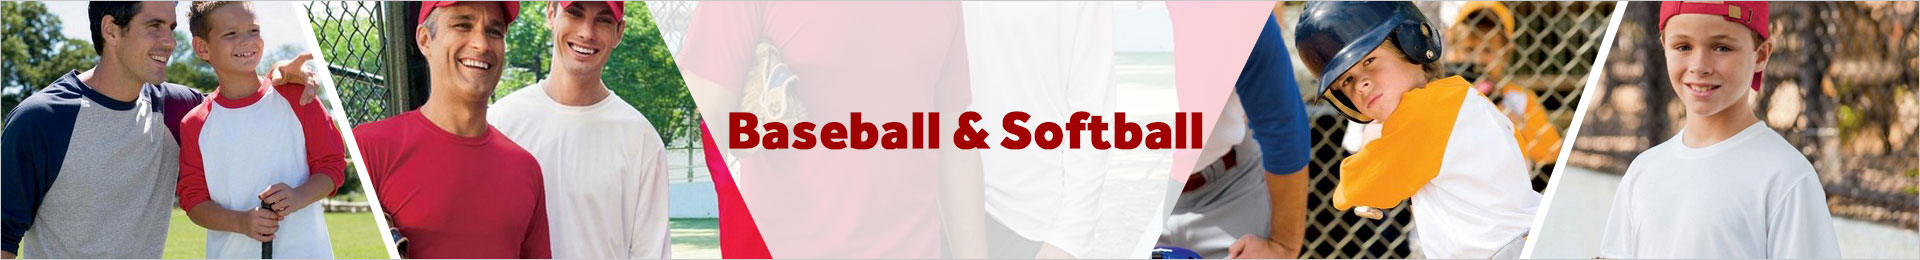 Baseball & Softball Clothing for Men, Women, Boys and Girls